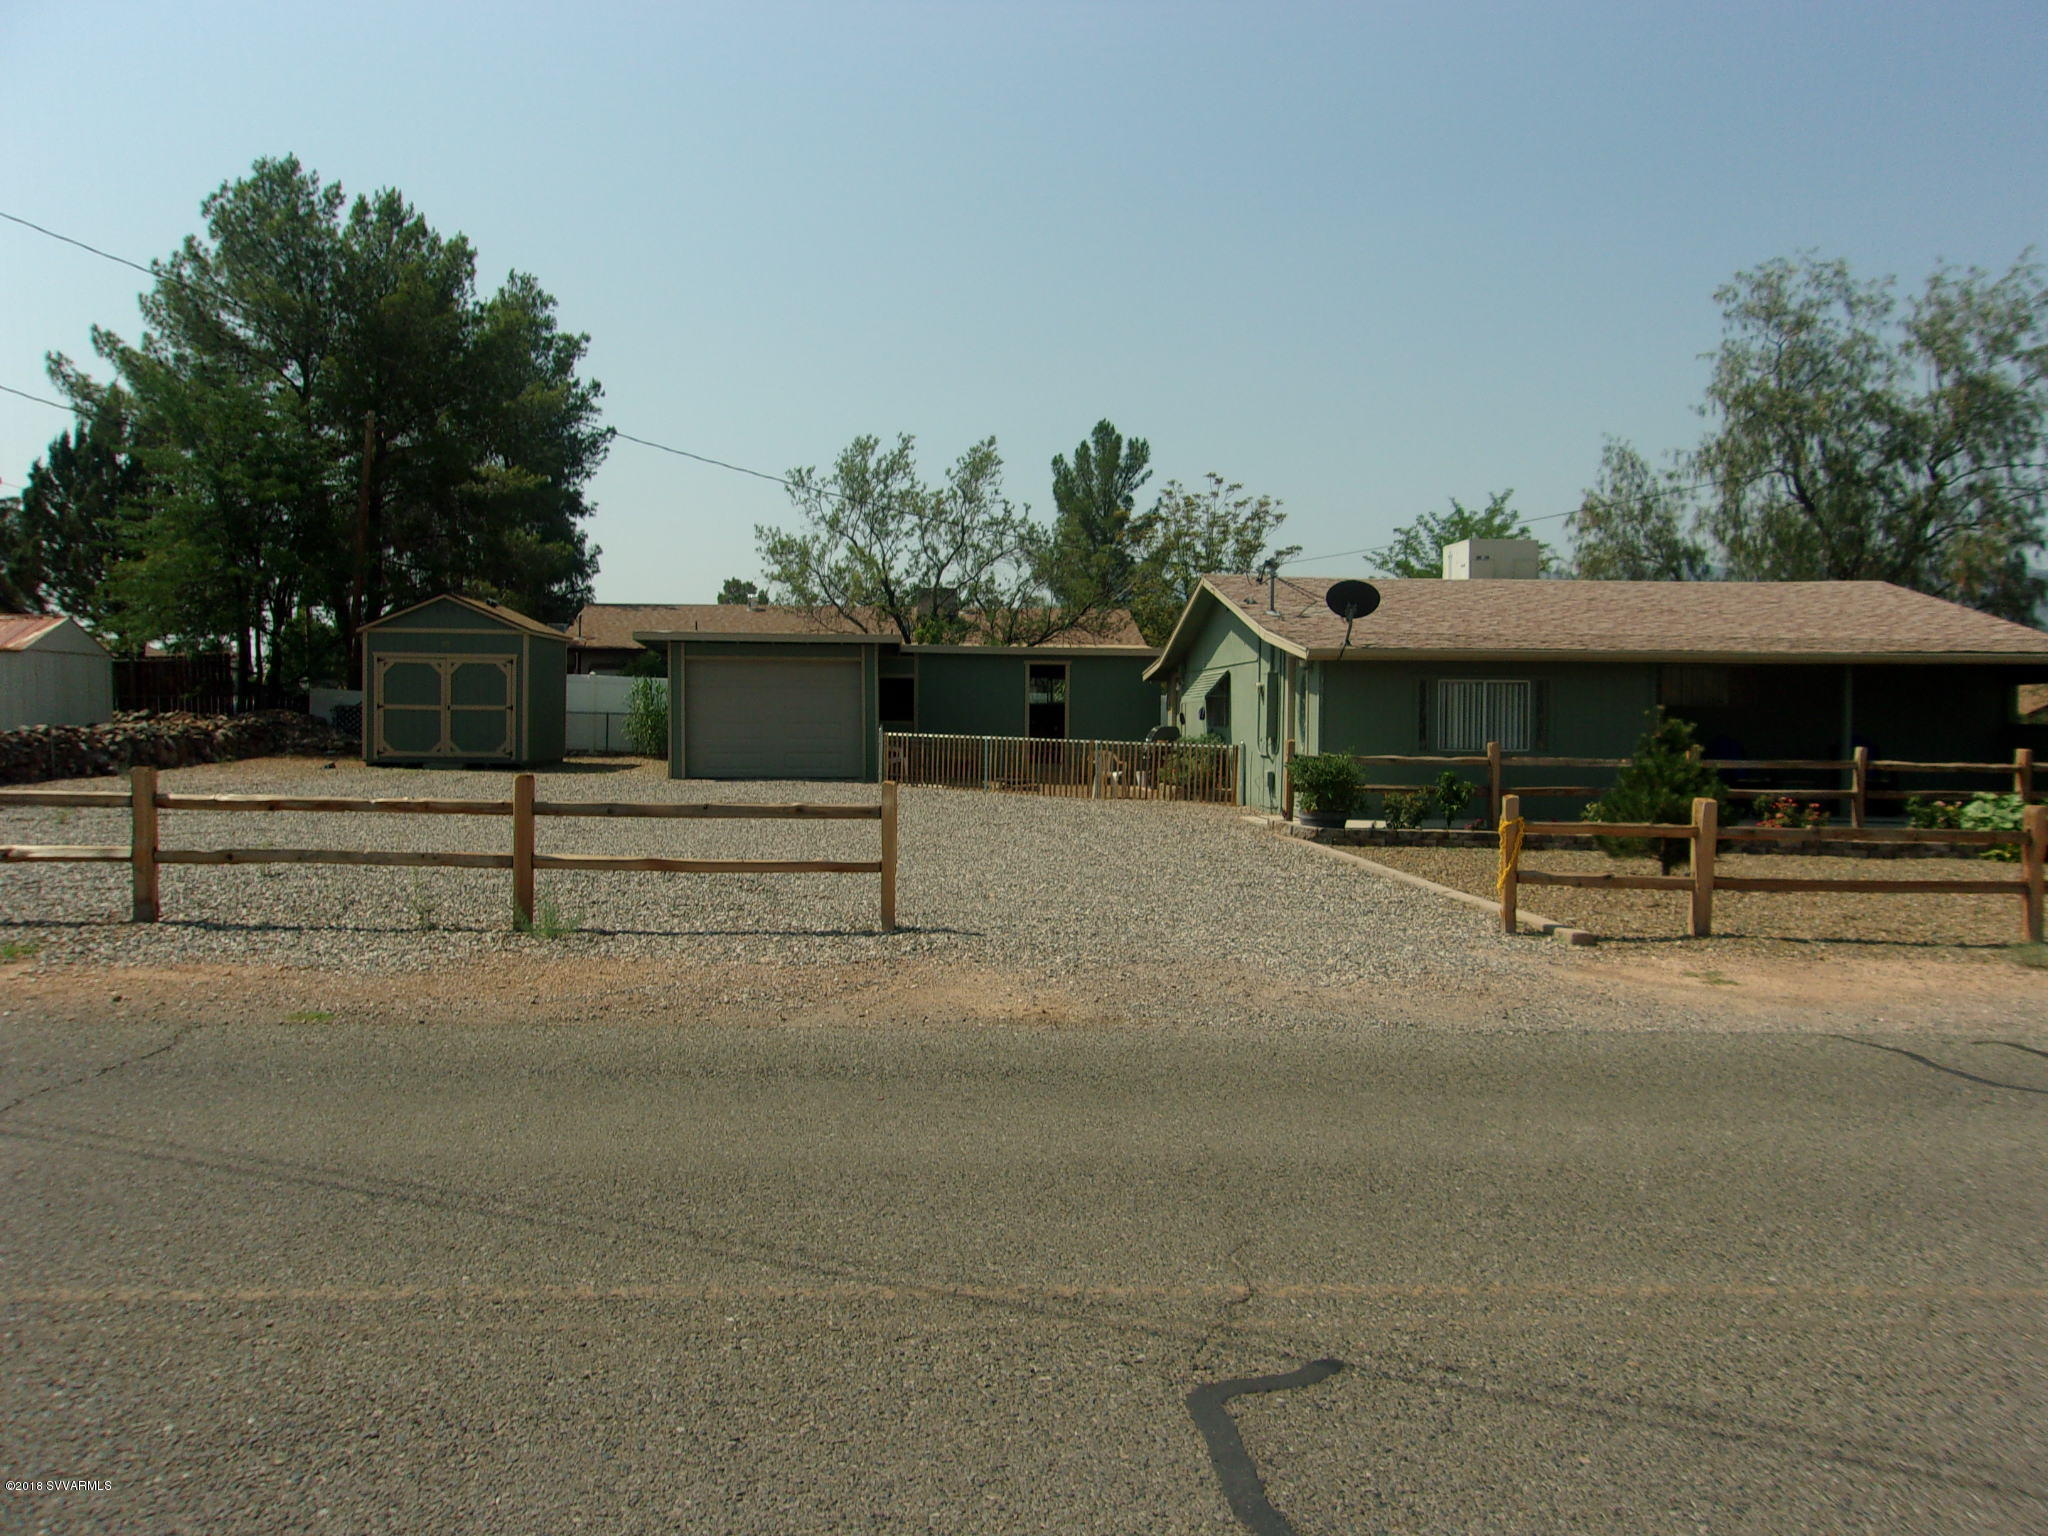 391 W Head St Camp Verde, AZ 86322